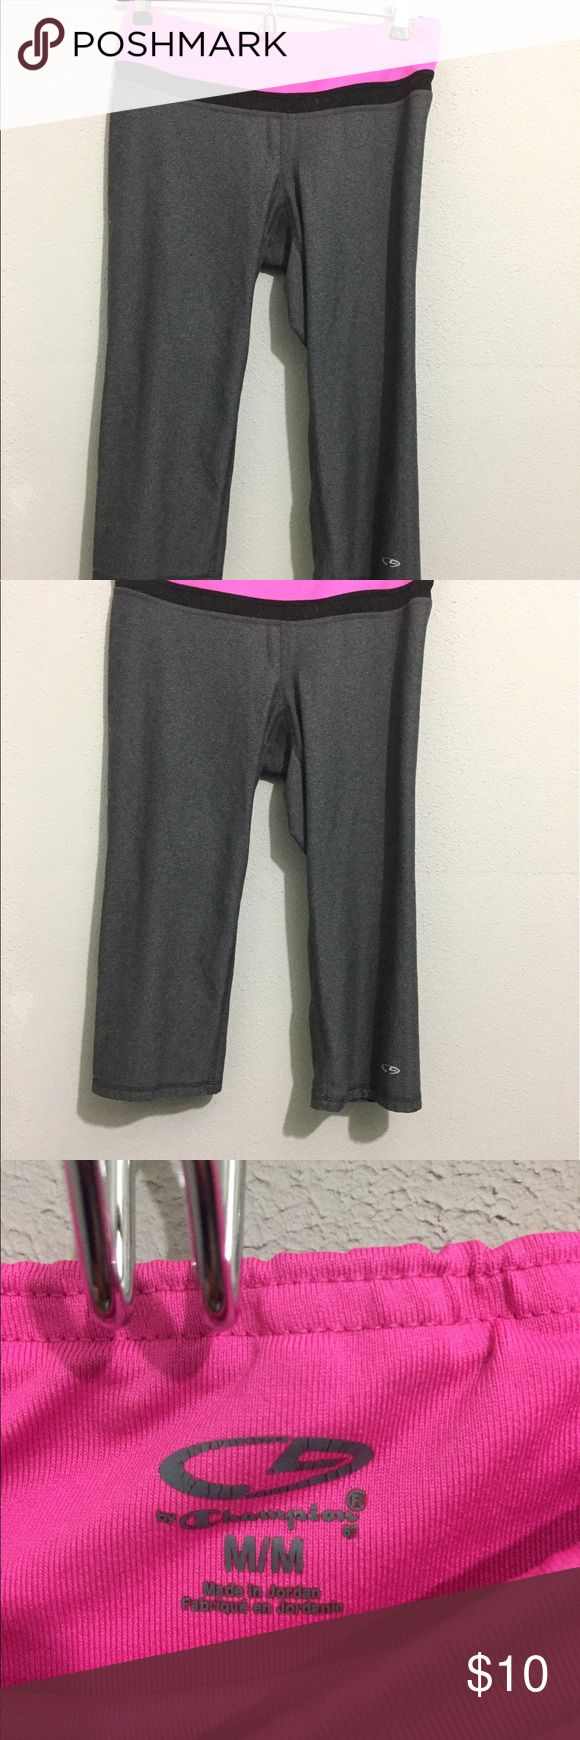 Pink and gray Athletic capris pants Great condition only worn once, selling because too large on me (I'm an XS). These fit true to size M or S Pants Track Pants & Joggers